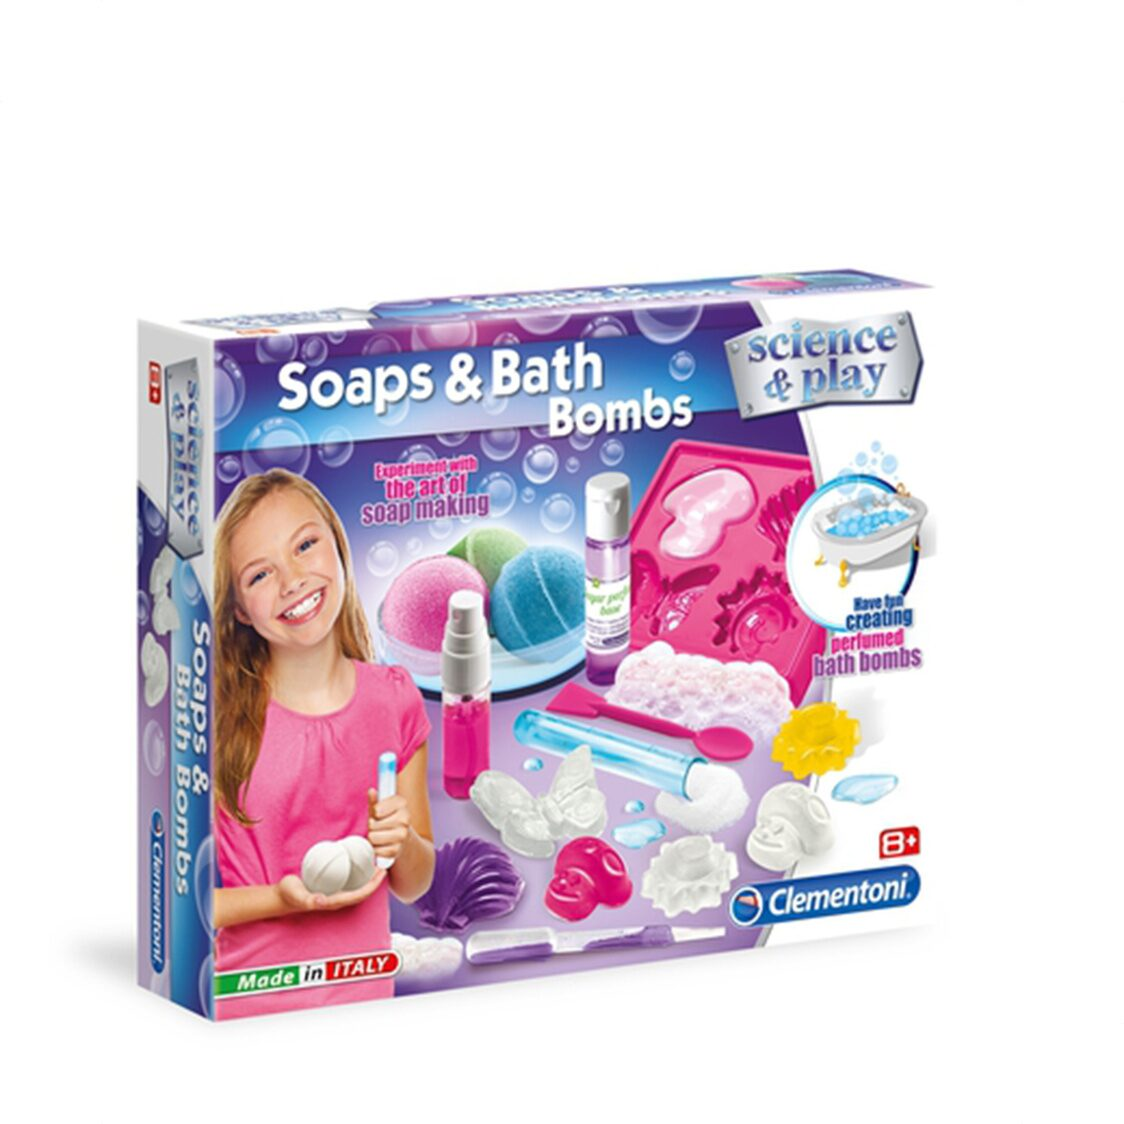 Soaps  Bath Bombs